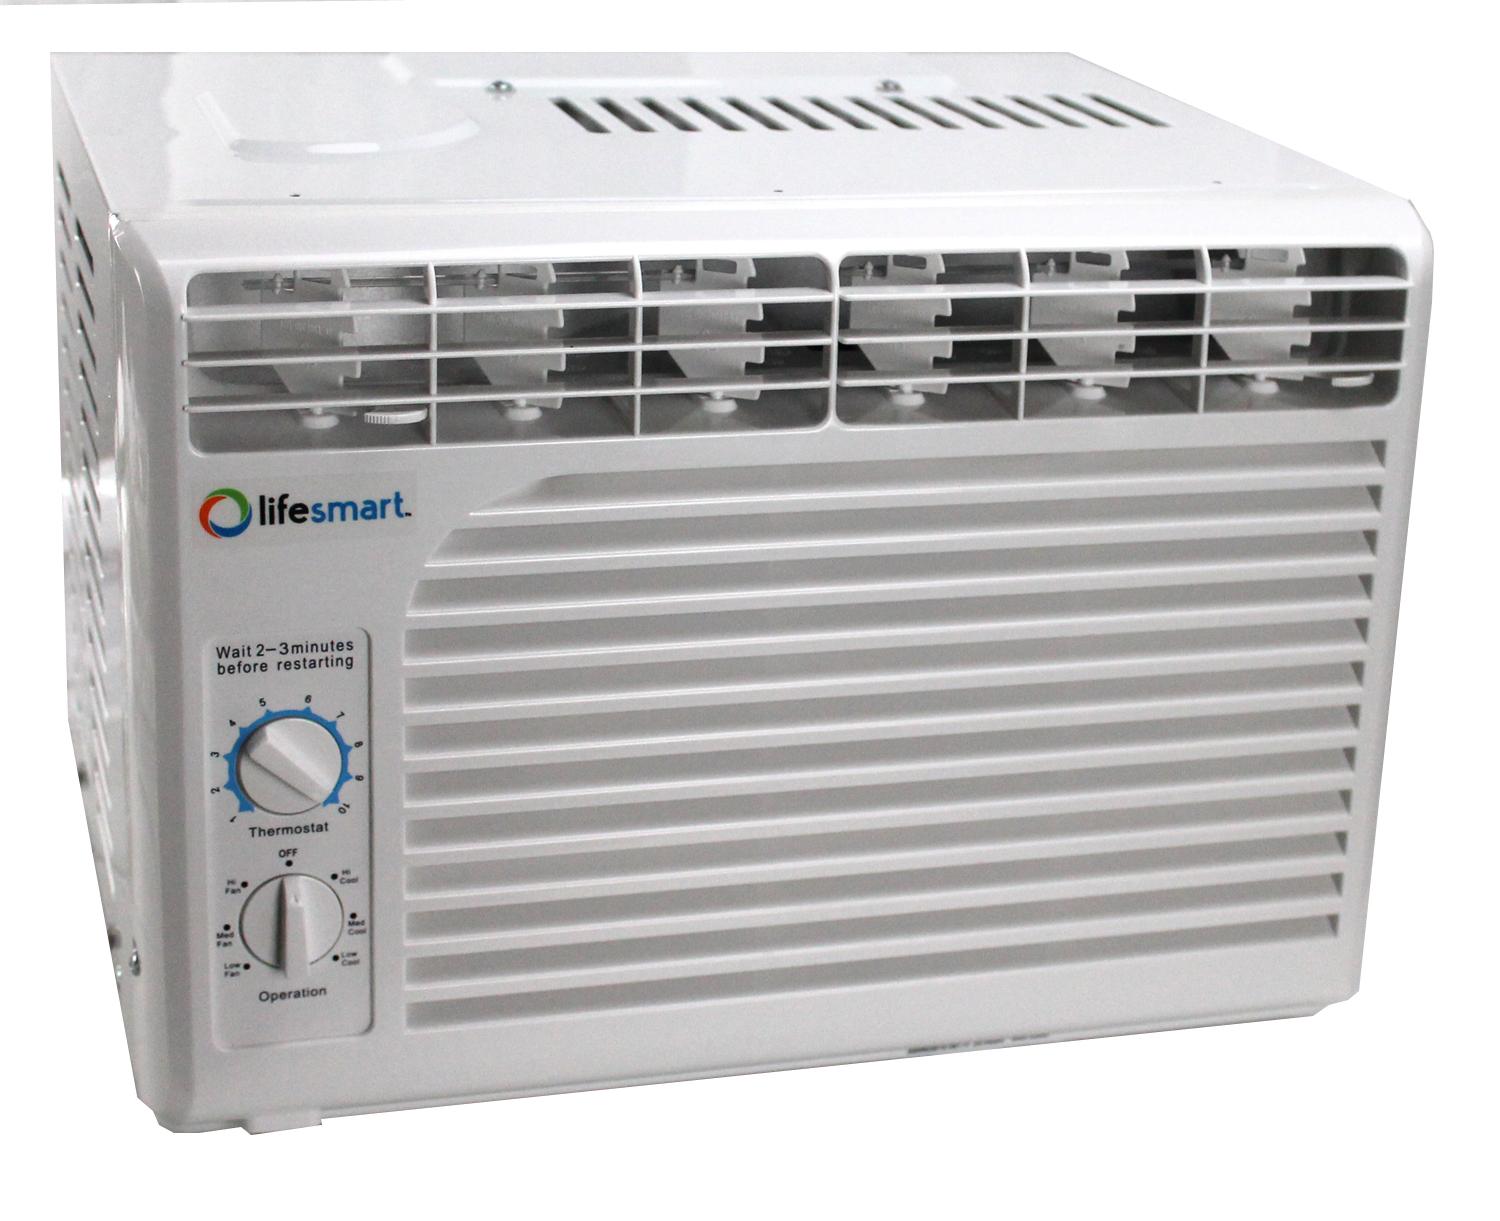 Lifesmart LS-WAC5 5,000 Btu Window Air Conditioner